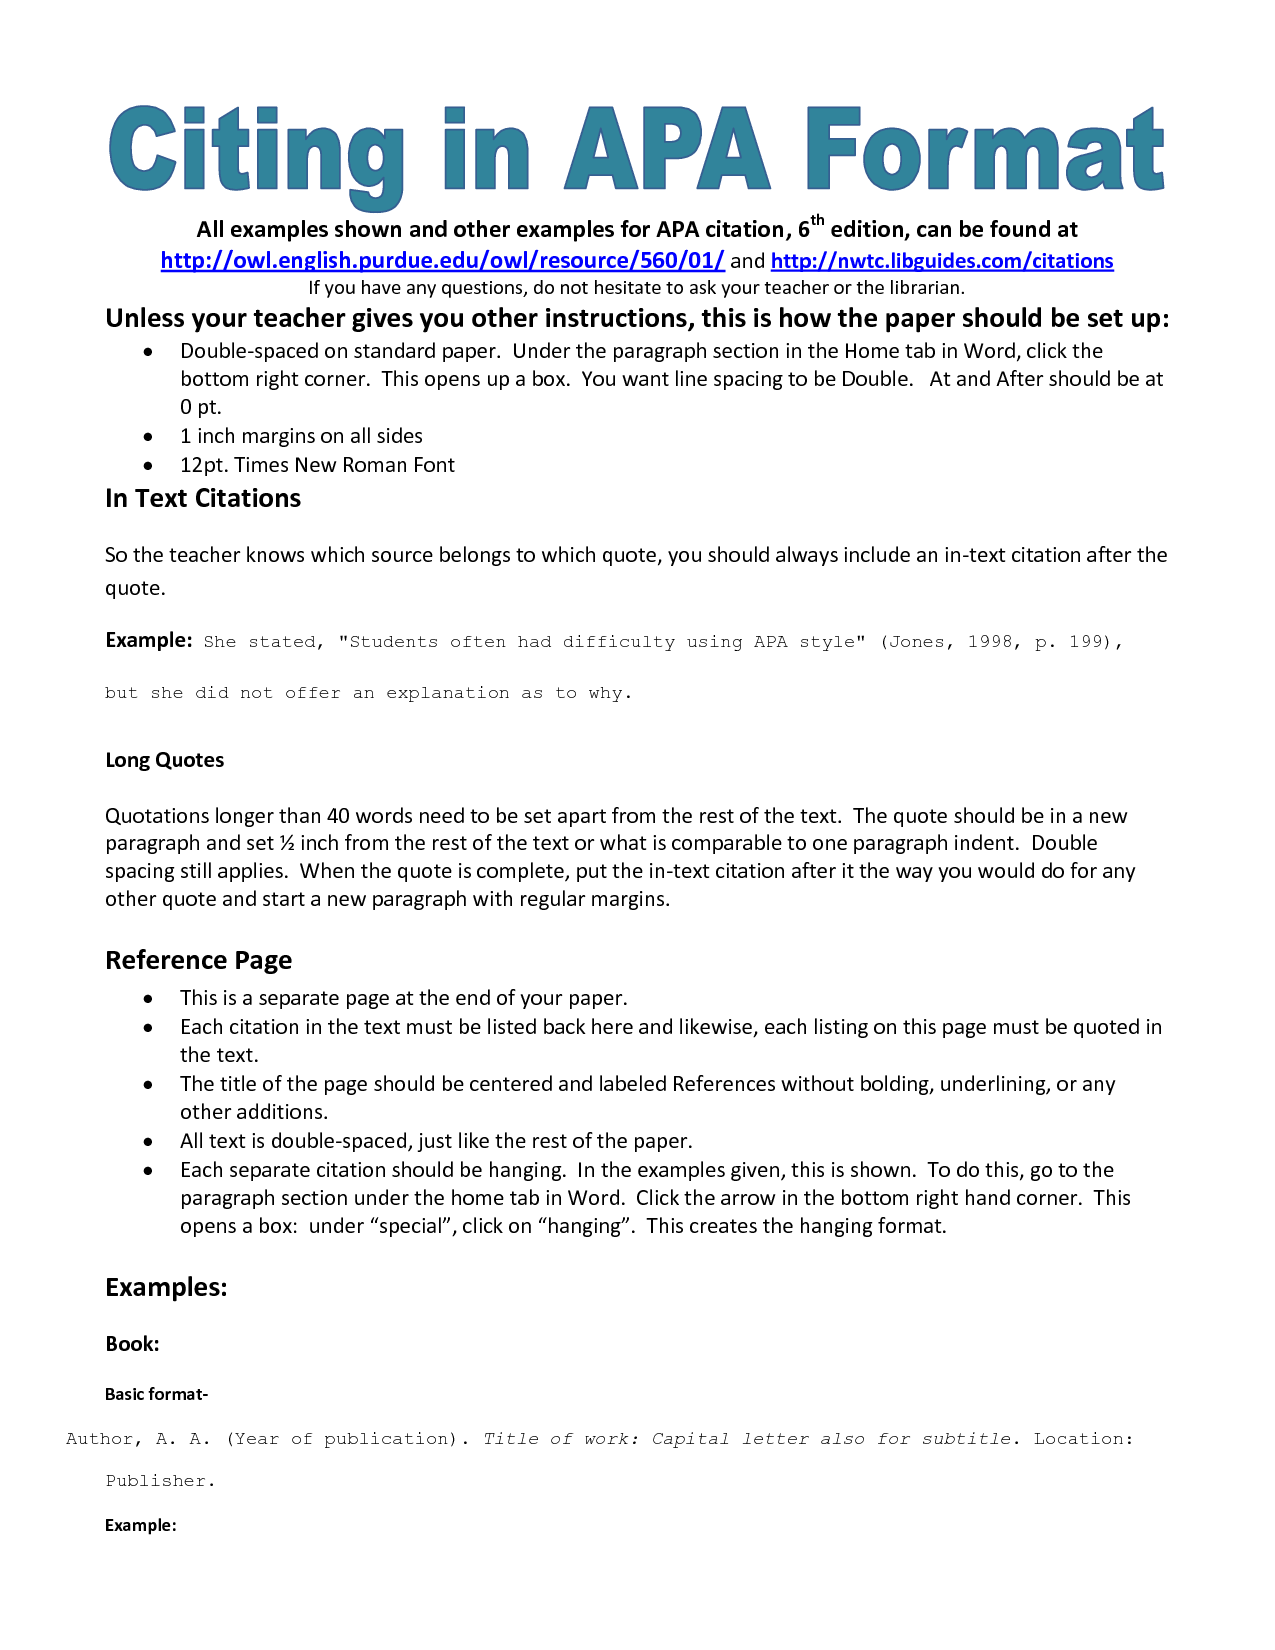 essay with apa format citation Apa paper formatting & style guidelines your teacher may want you to format your paper using apa guidelines if you were told to create your citations in apa format.